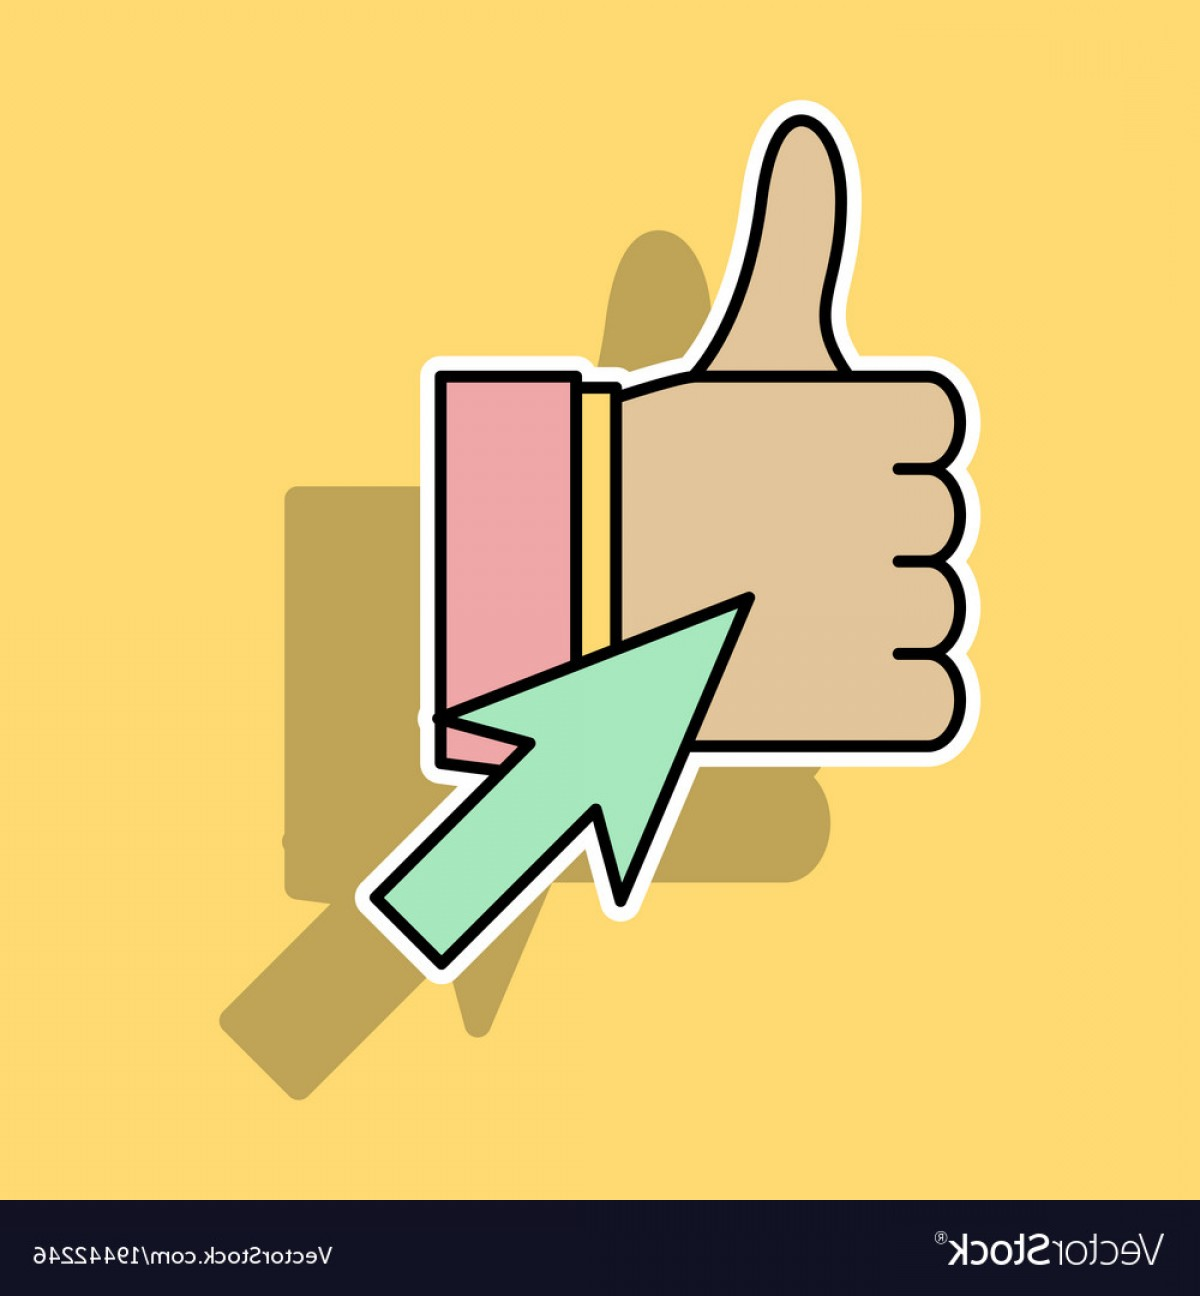 Finger Facebook Vector: Sticker Thumbs Up Like Social Network Facebook Vector